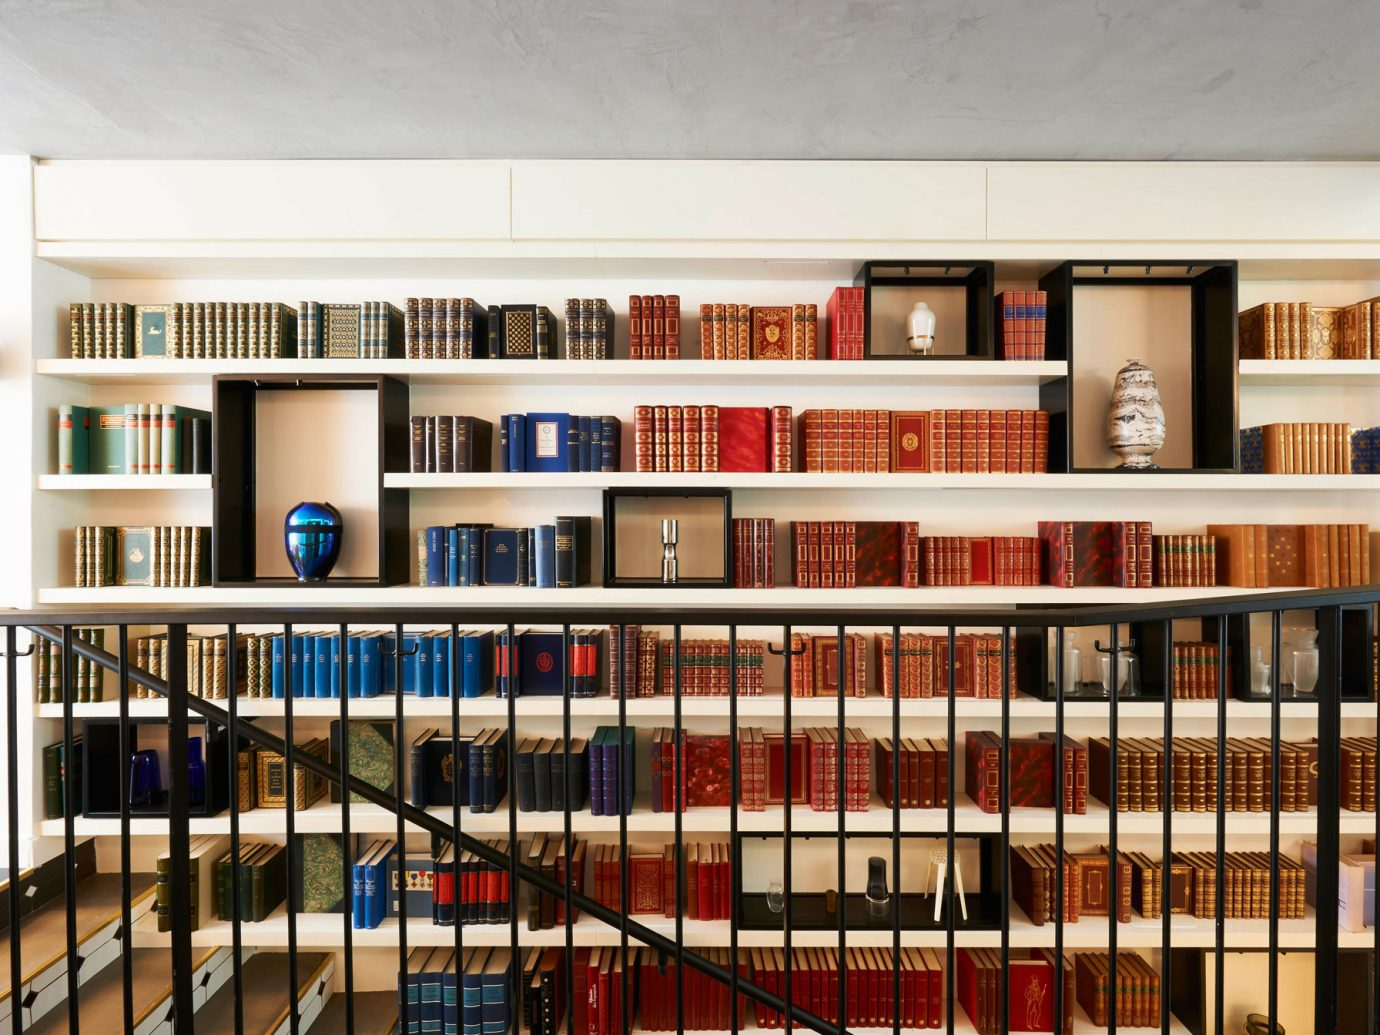 Hotels indoor library shelf ceiling public library building shelving furniture bookcase interior design bookshelf